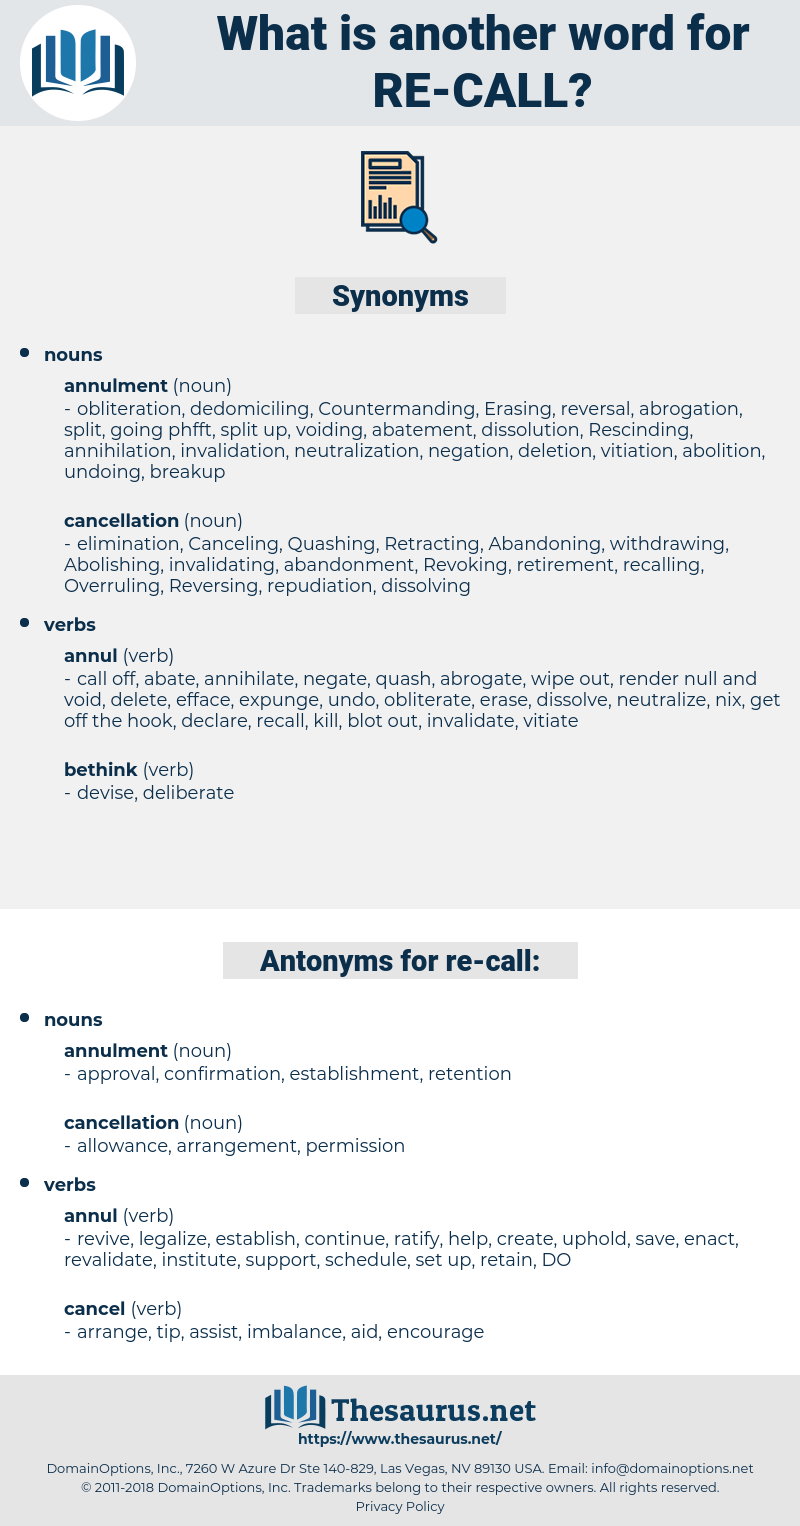 re-call, synonym re-call, another word for re-call, words like re-call, thesaurus re-call